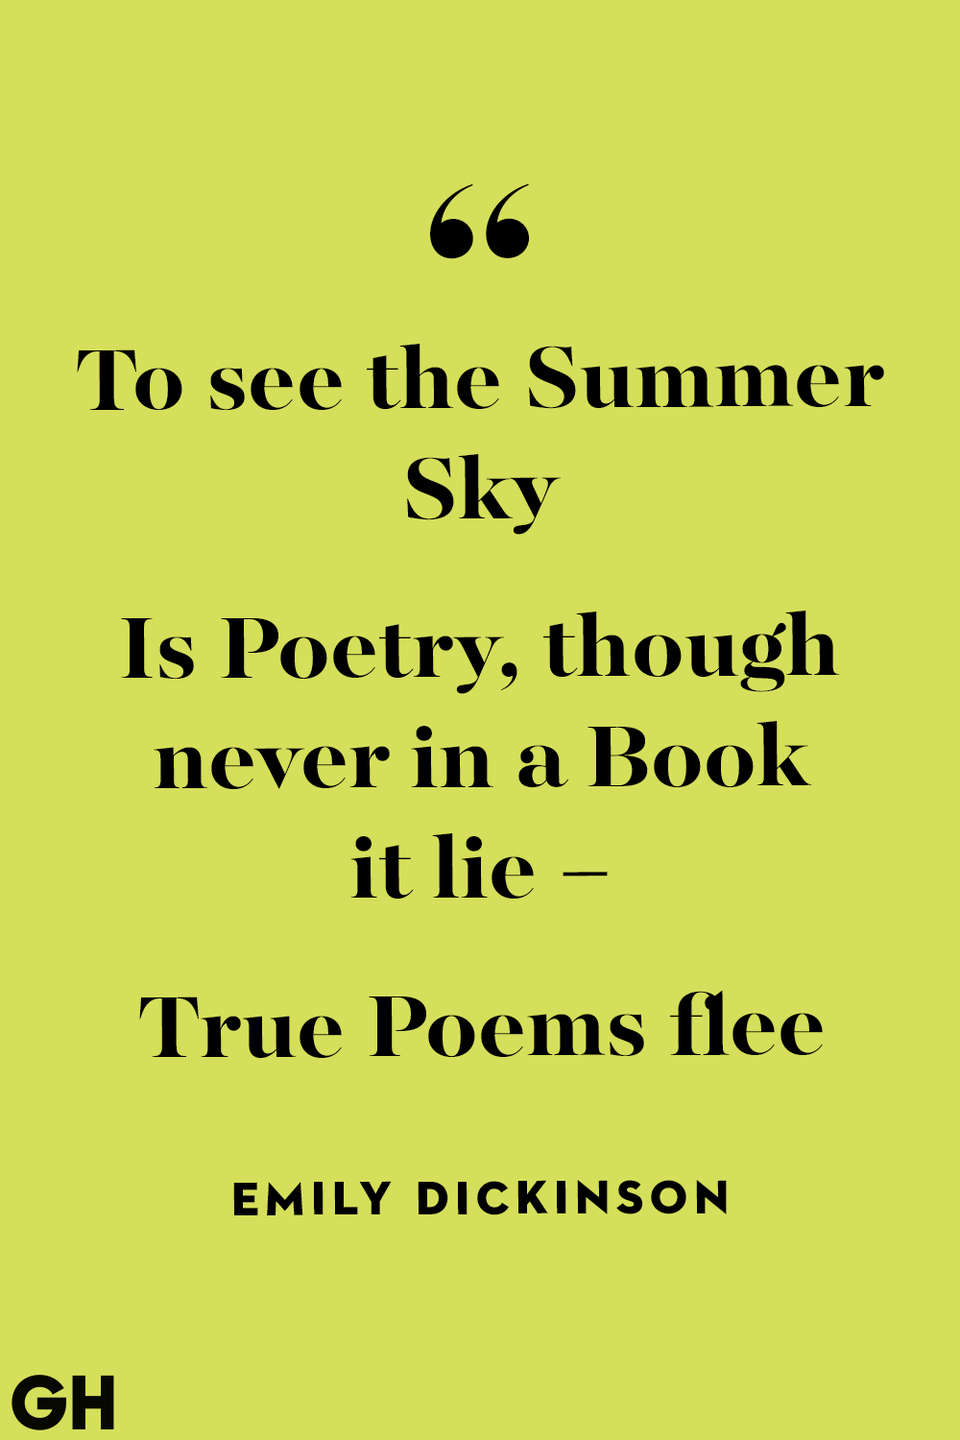 <p>To see the Summer Sky</p><p>Is Poetry, though never in a Book it lie –</p><p>True Poems flee</p>